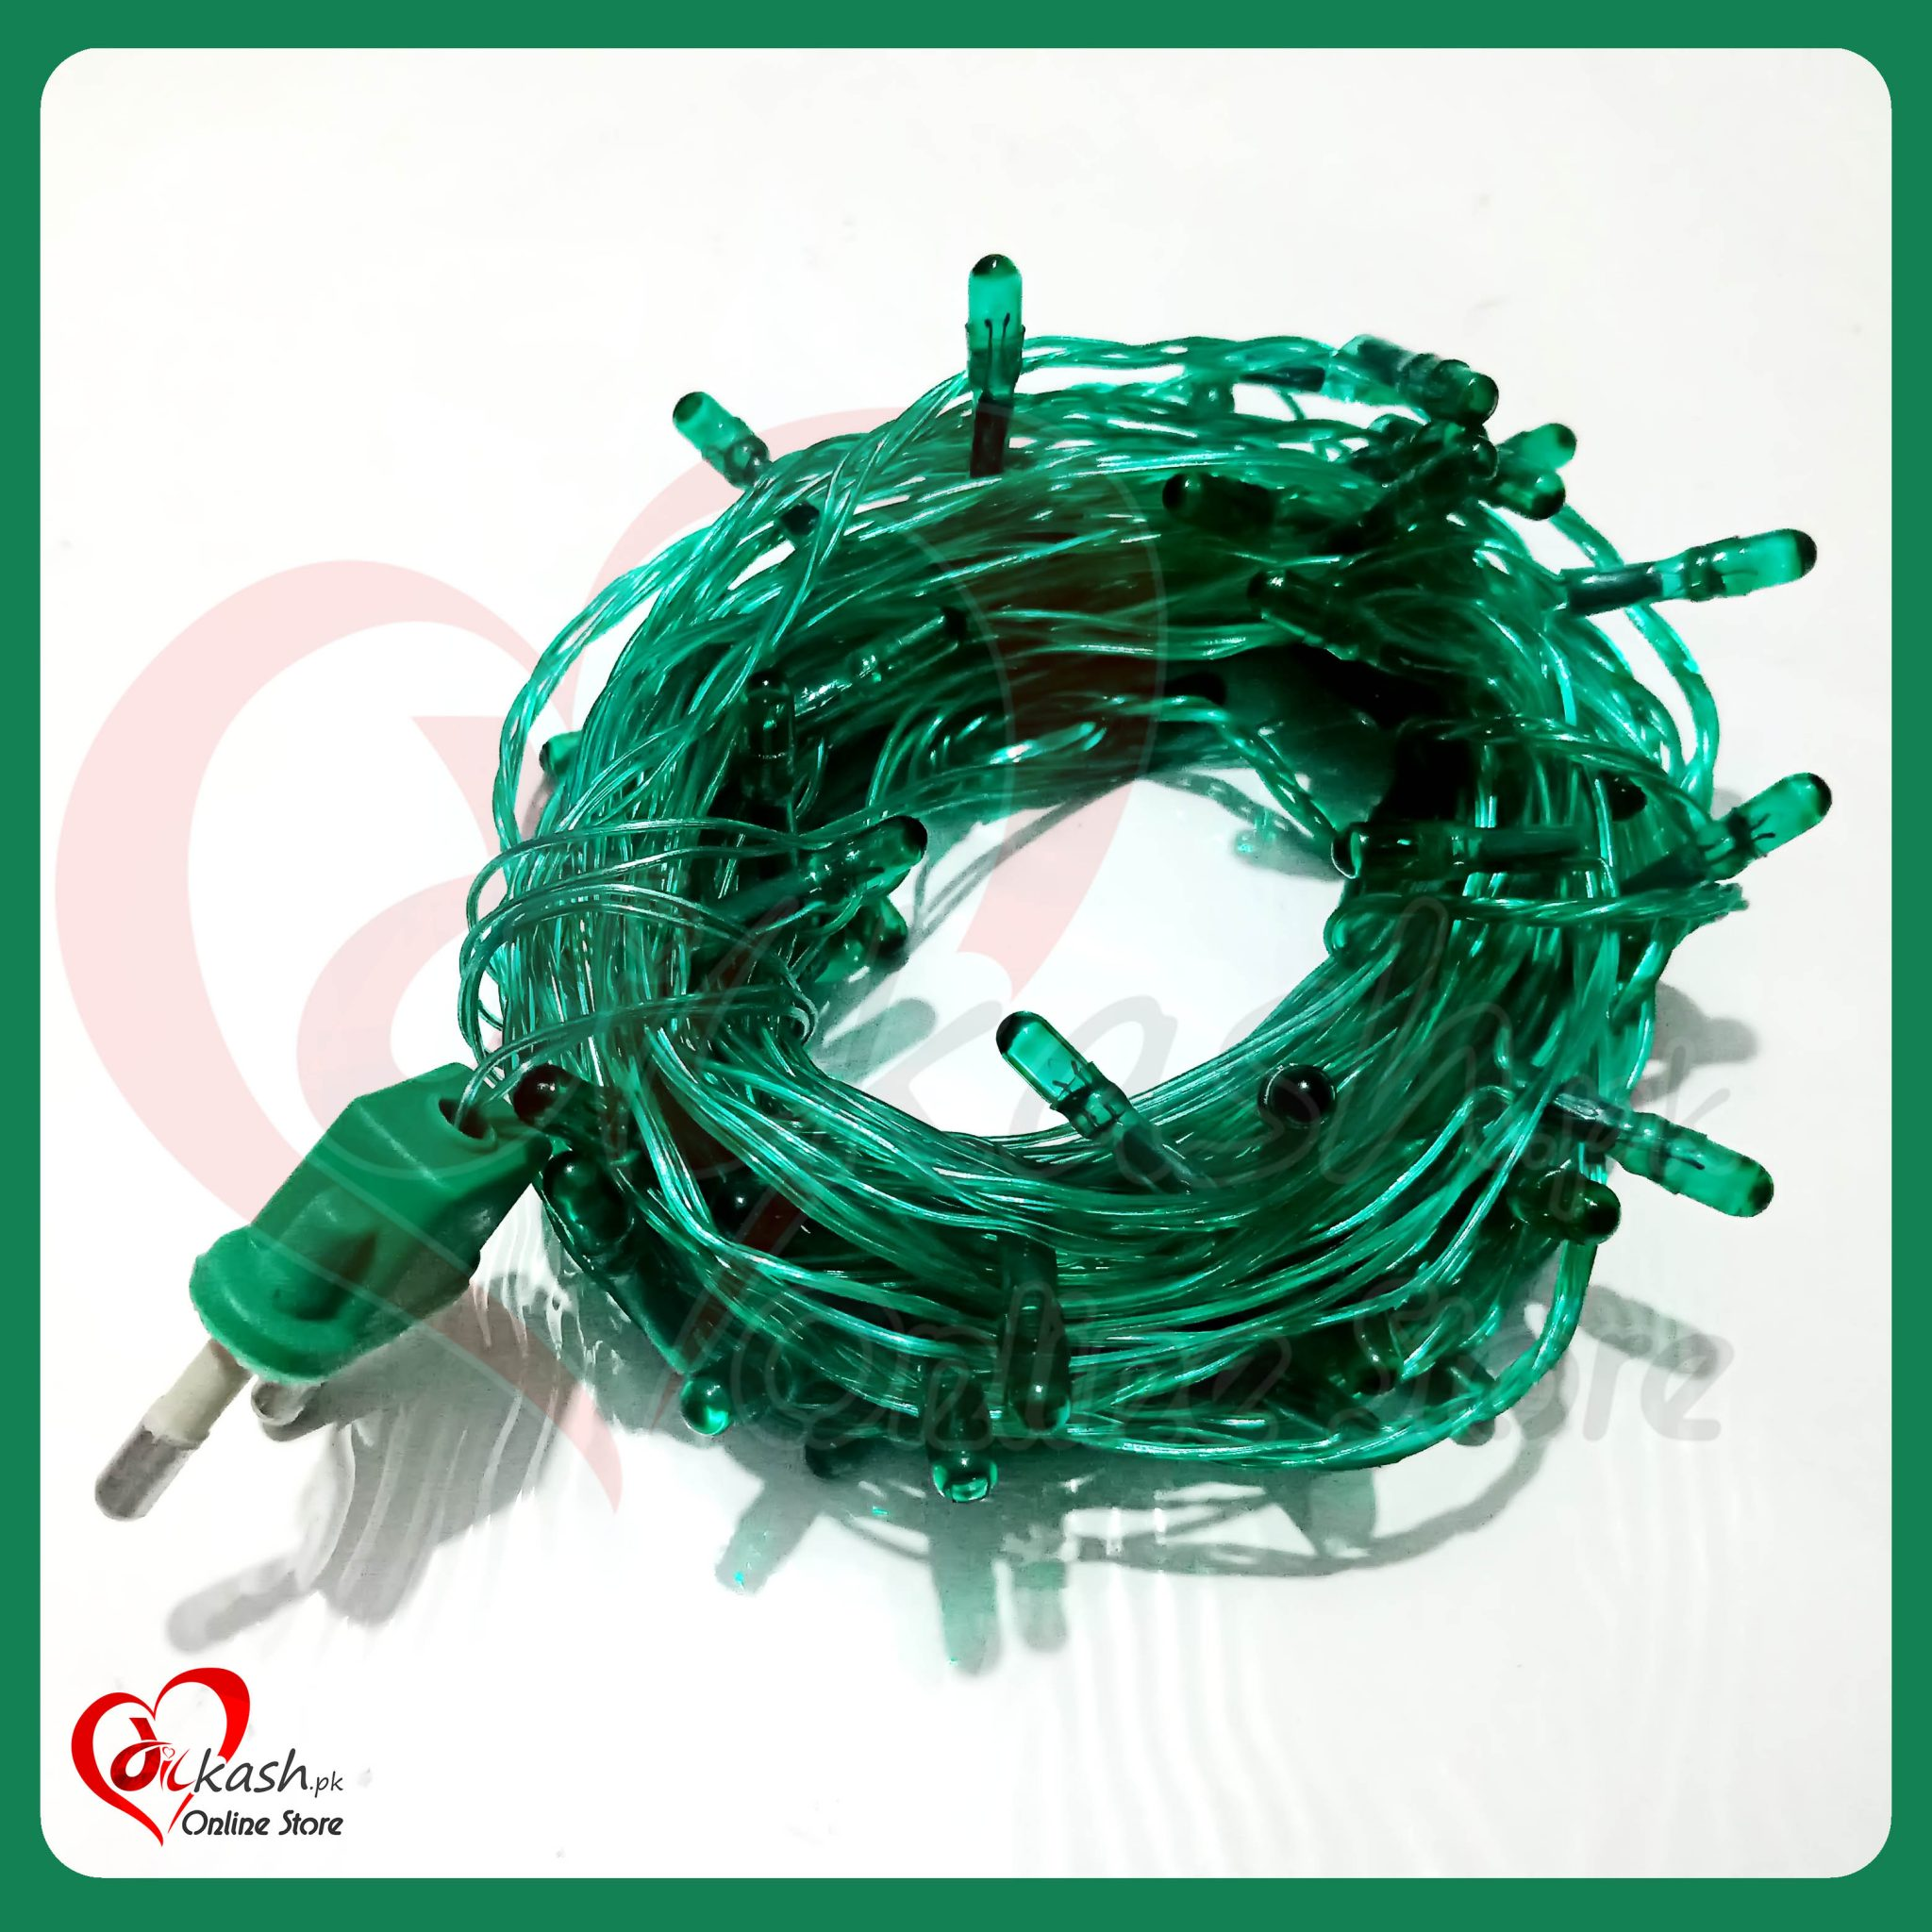 Fairy Lights Decoration LED Still - Christmas Lights - 25 Feet Long - Green